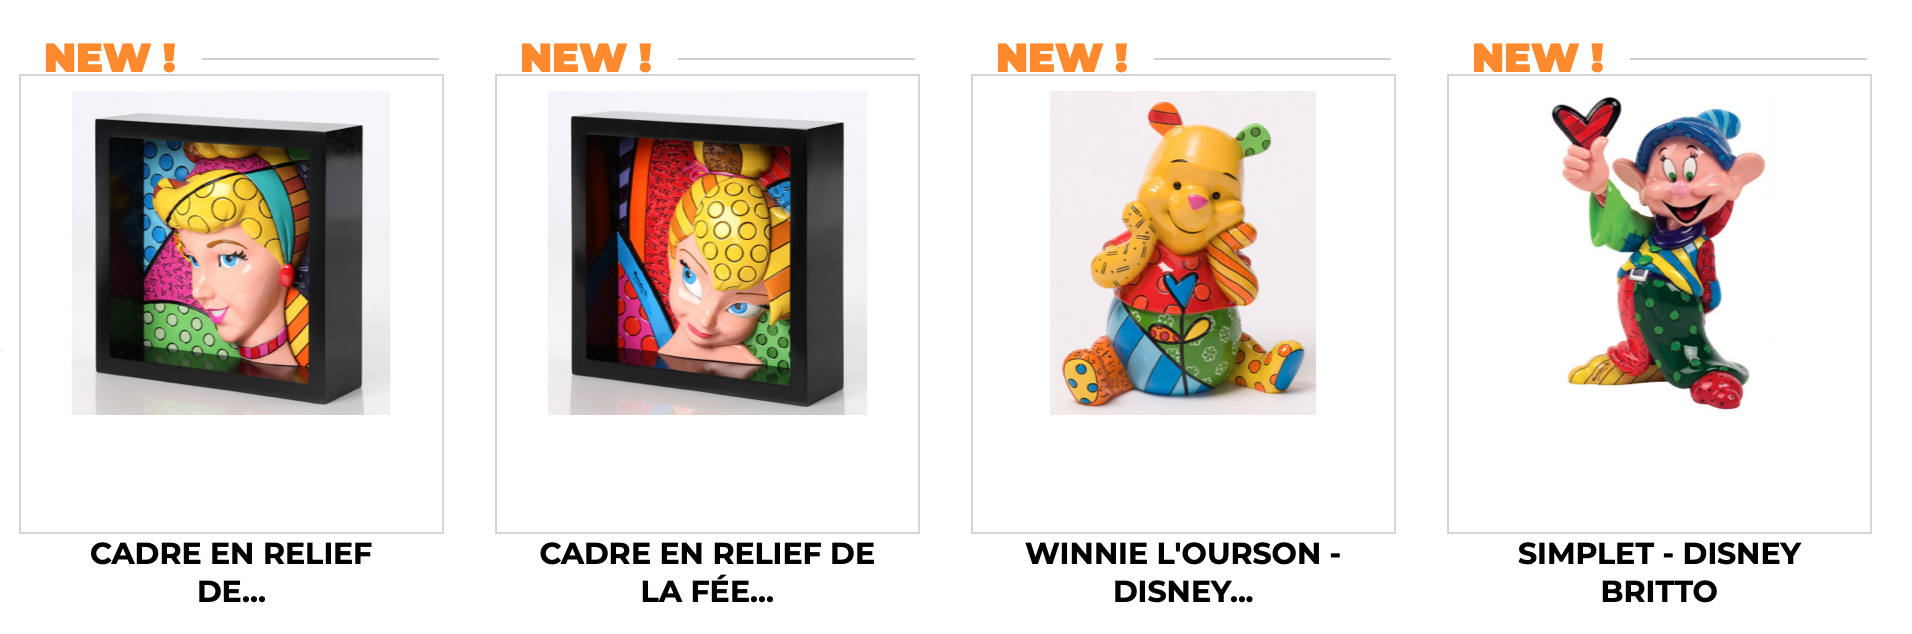 Cadeau City Disney Britto